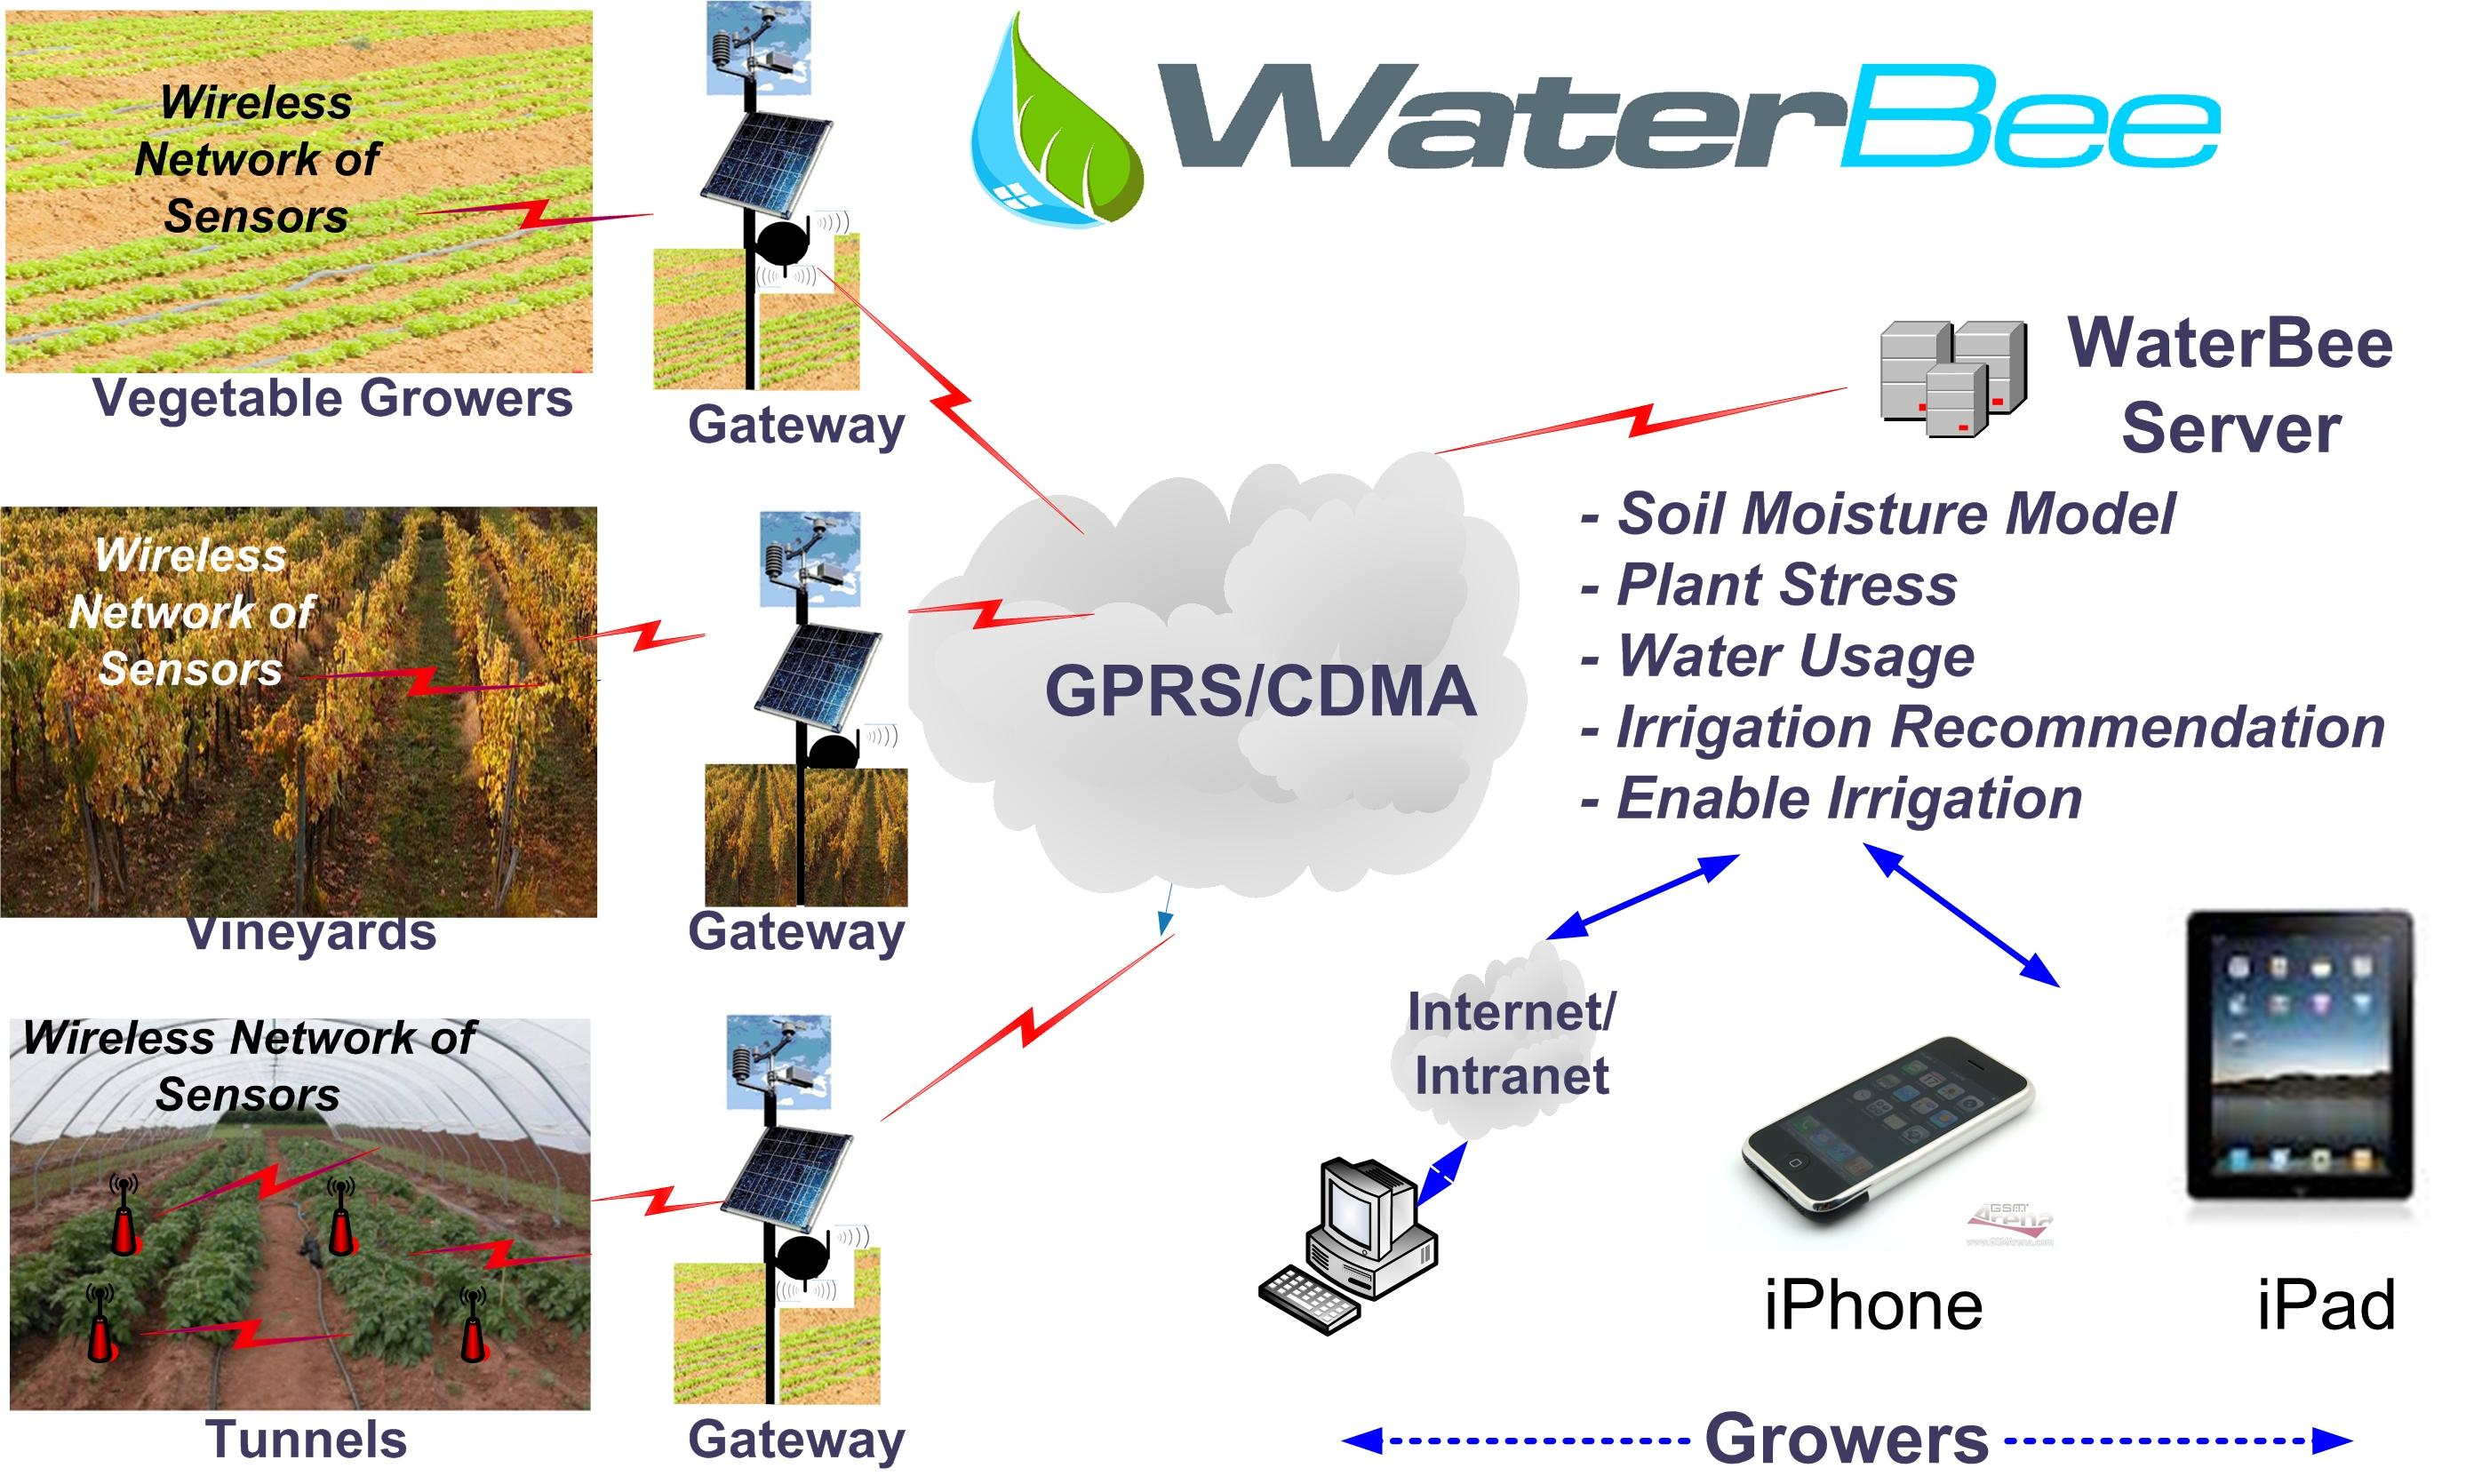 WaterBee-Operational-System